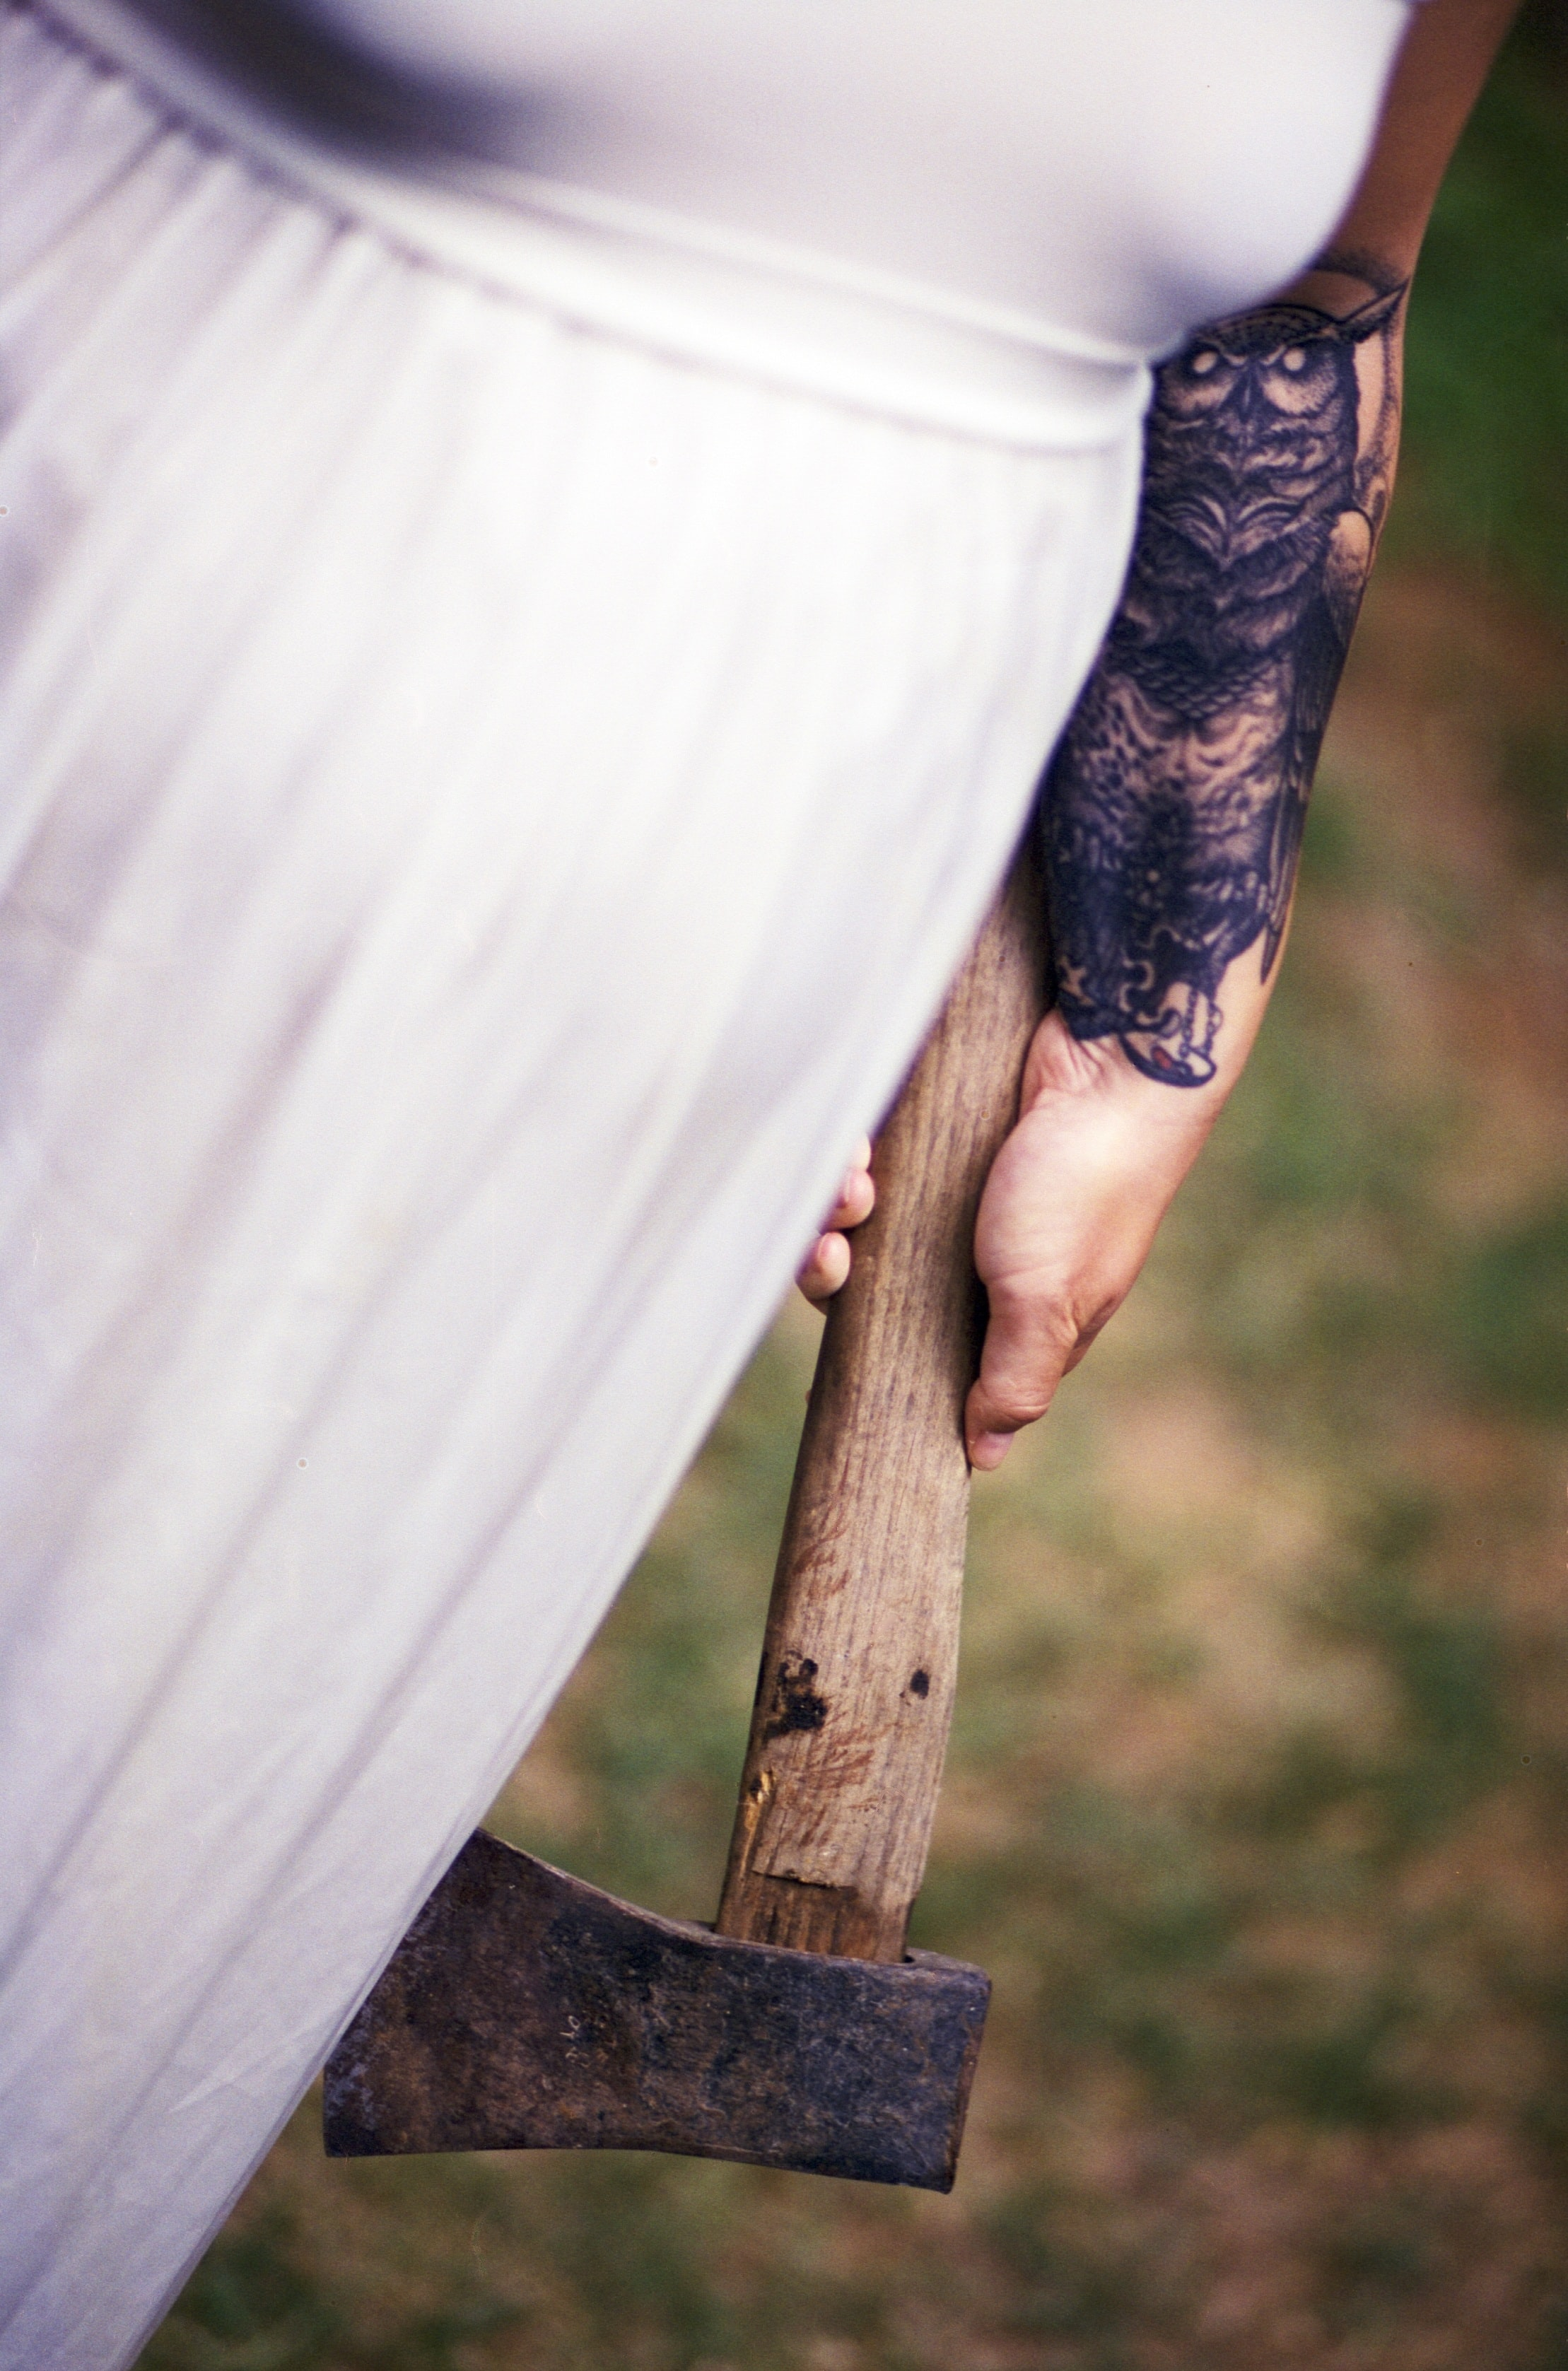 A lady in a white dress holding a rusty axe.